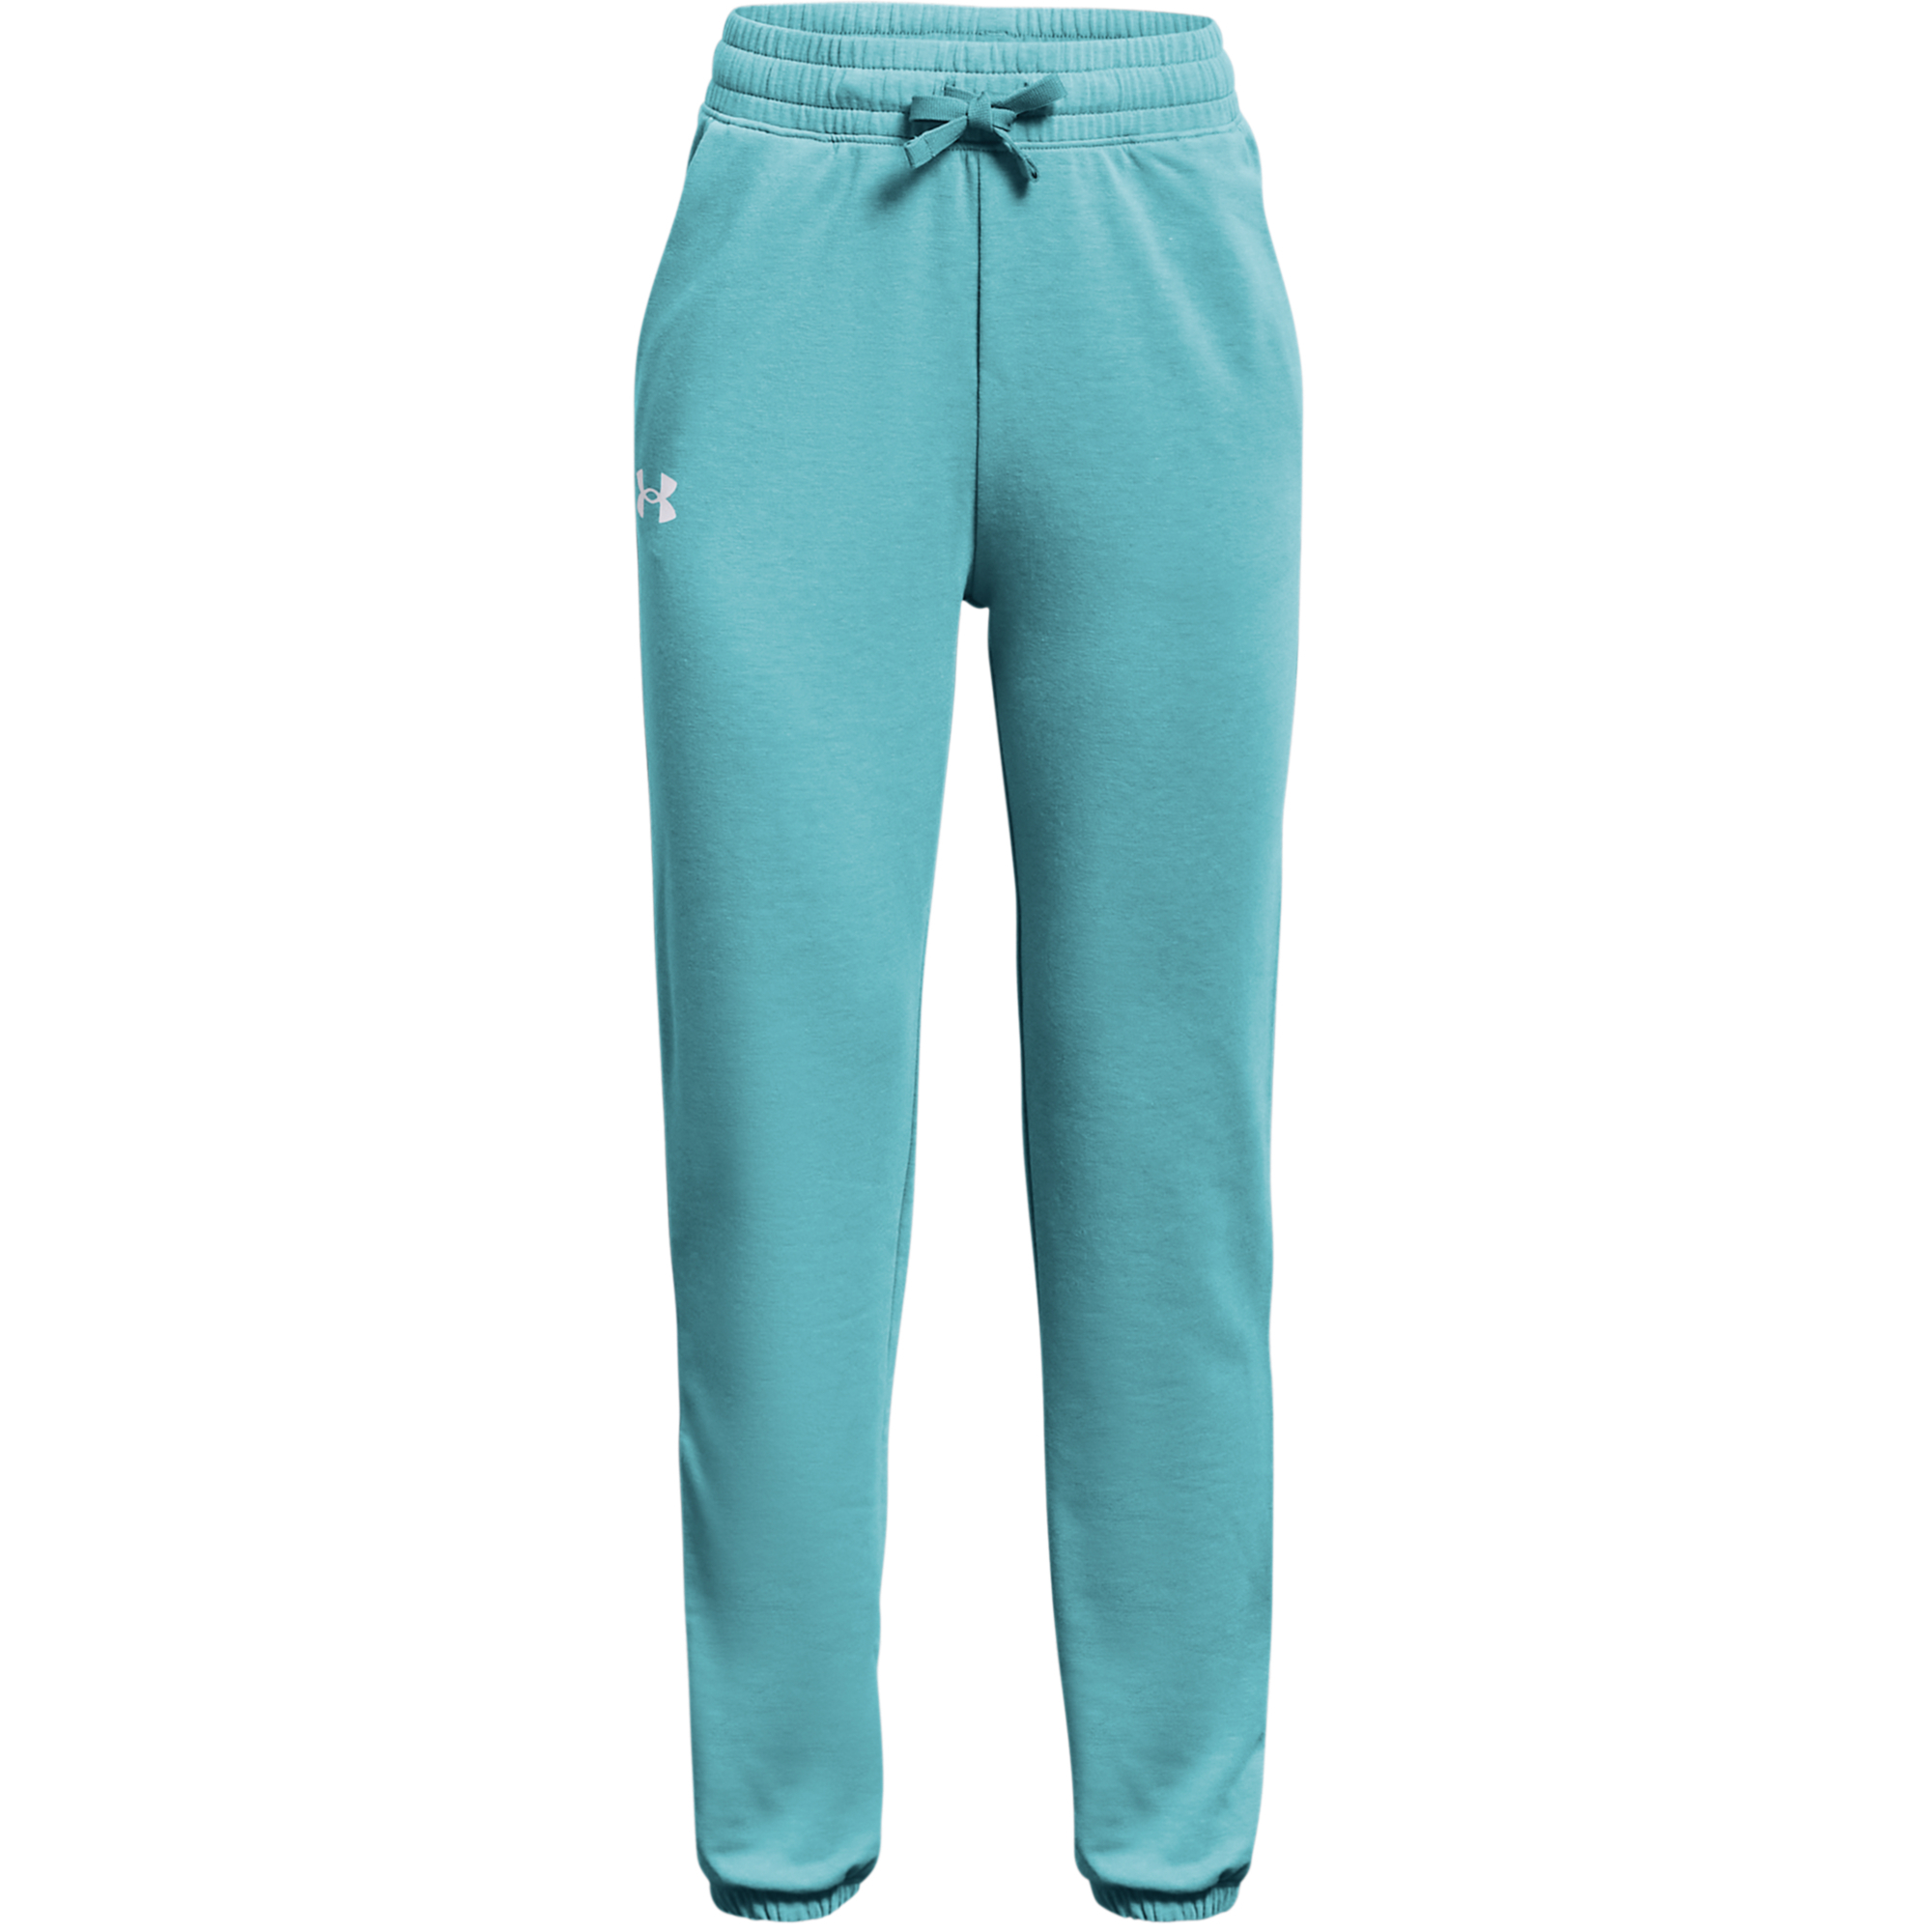 Under Armour Y Rival Terry Taped Pant Blue/ Breeze/ White